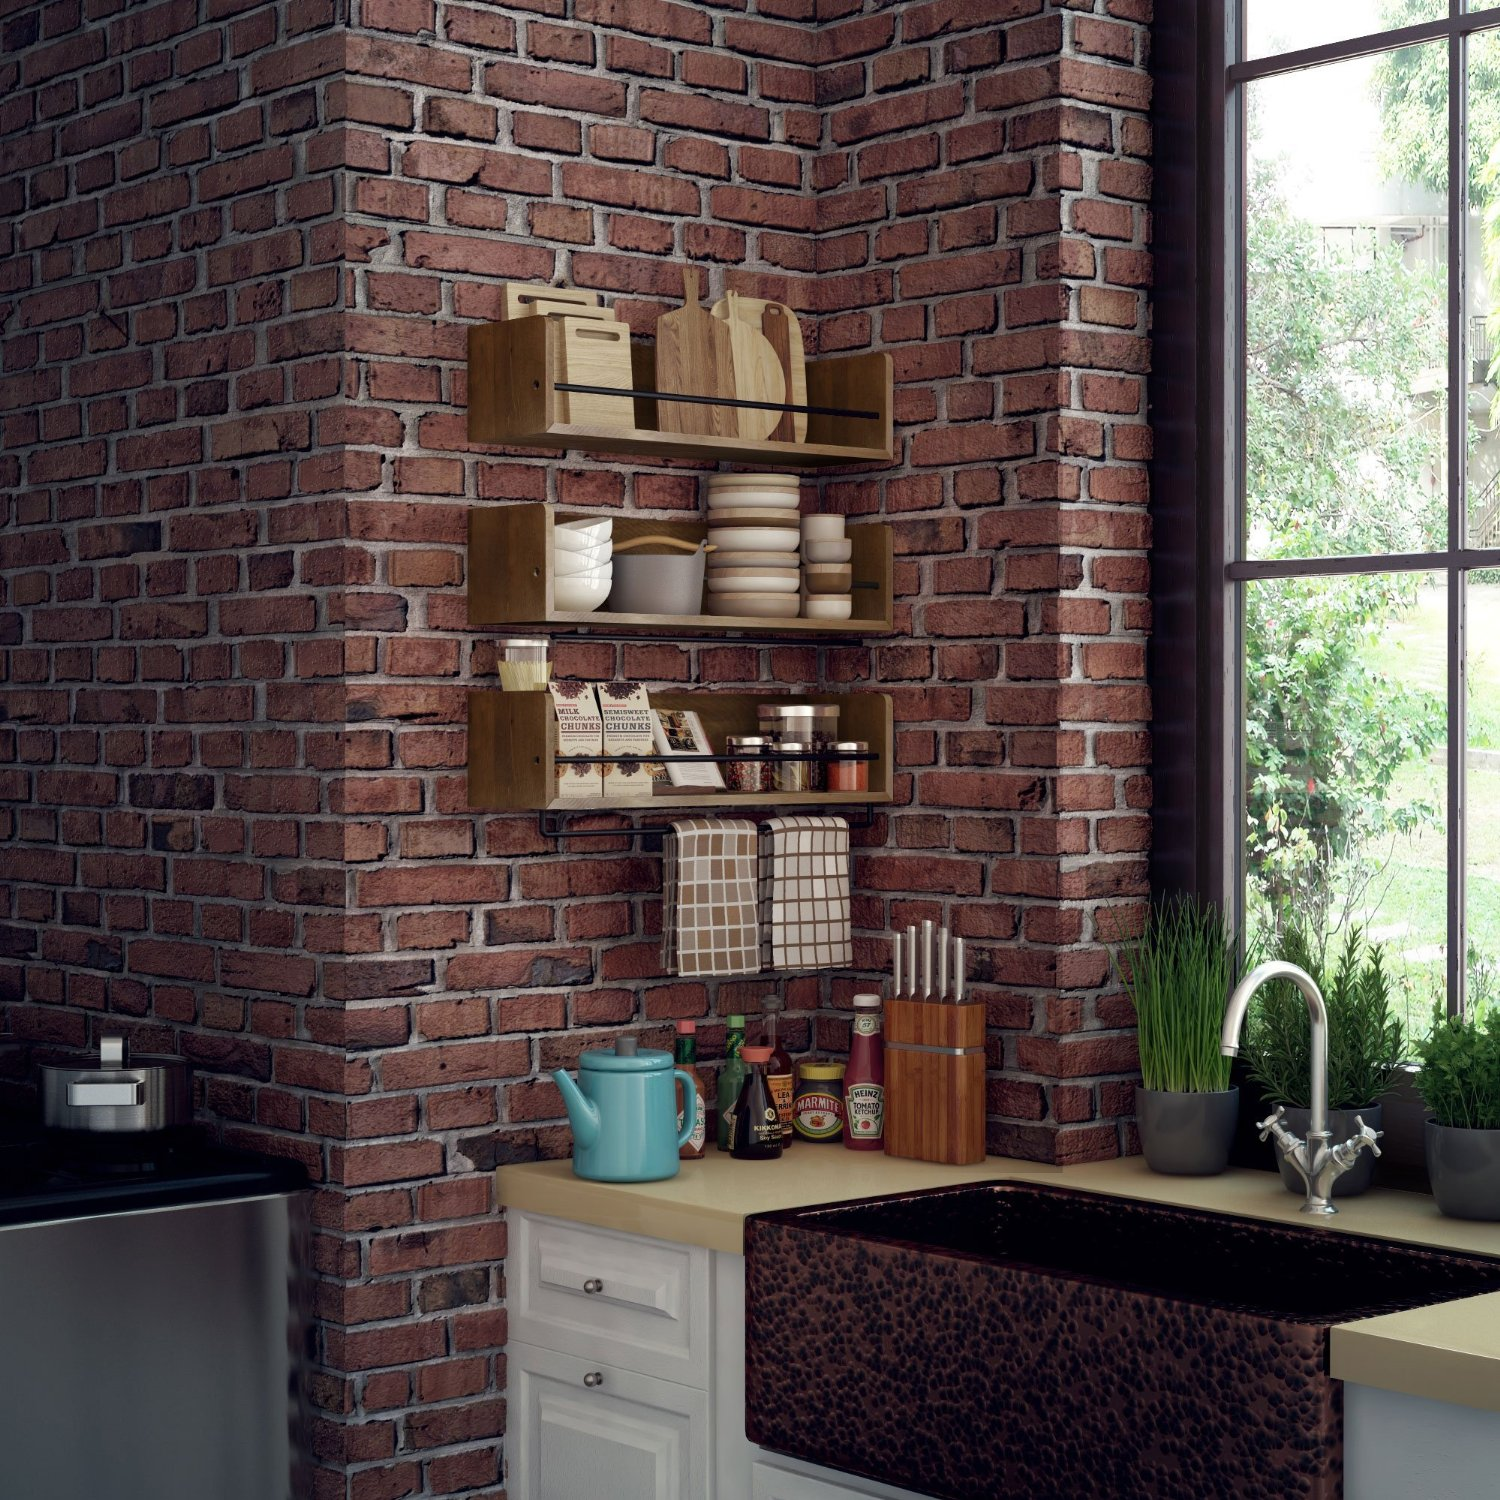 top 10 types of spice racks buying guide. Black Bedroom Furniture Sets. Home Design Ideas